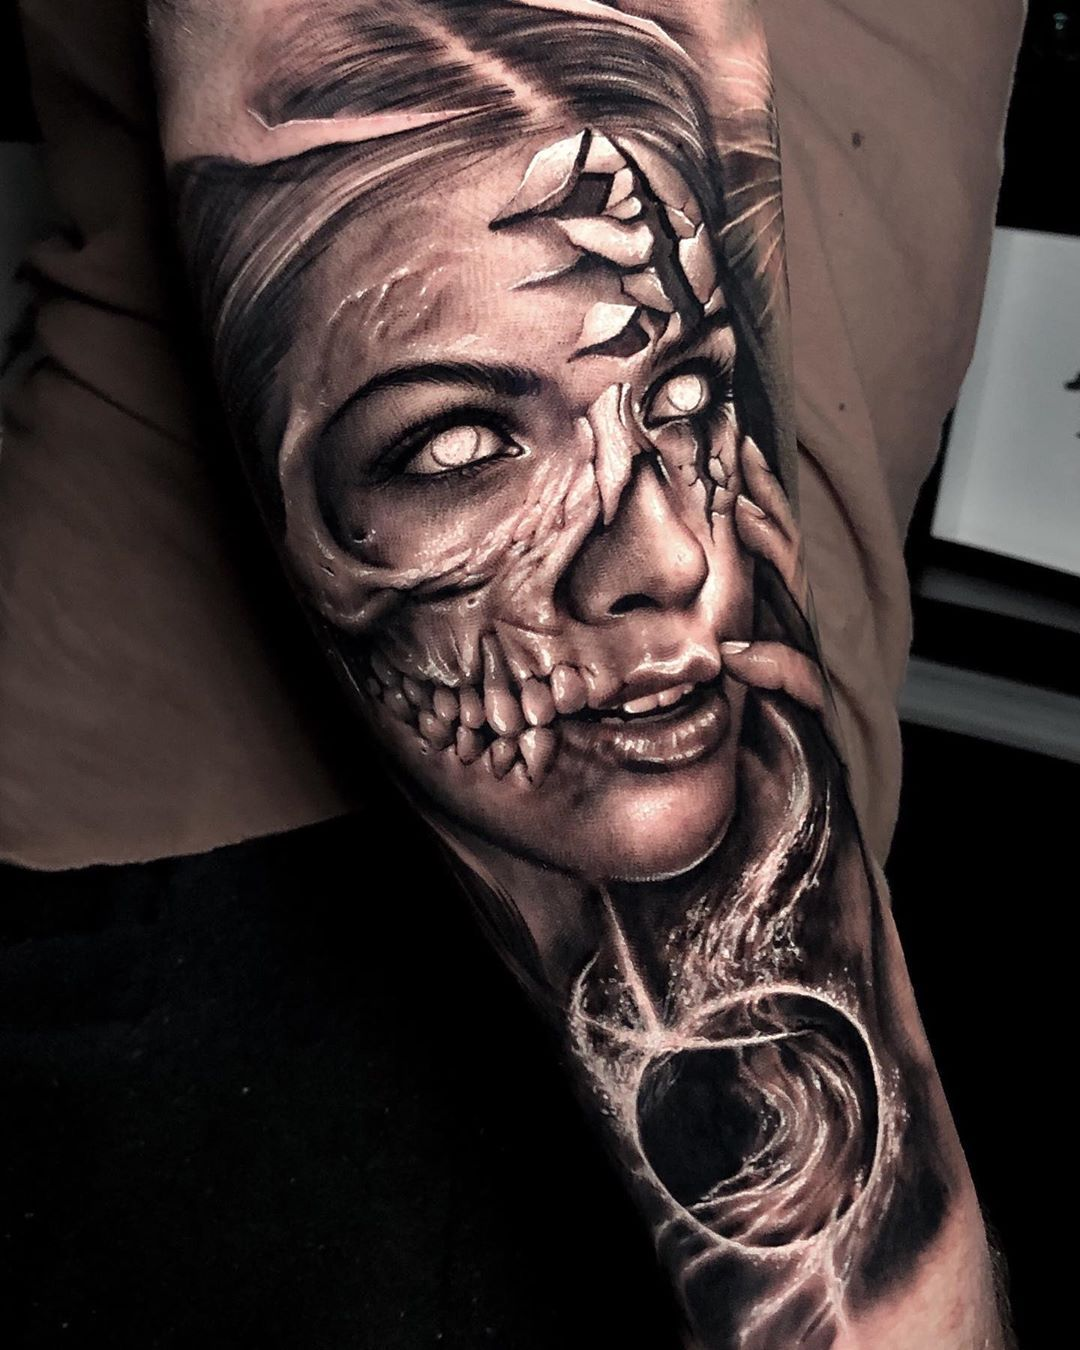 Image may contain one or more people Portrait tattoo sleeve